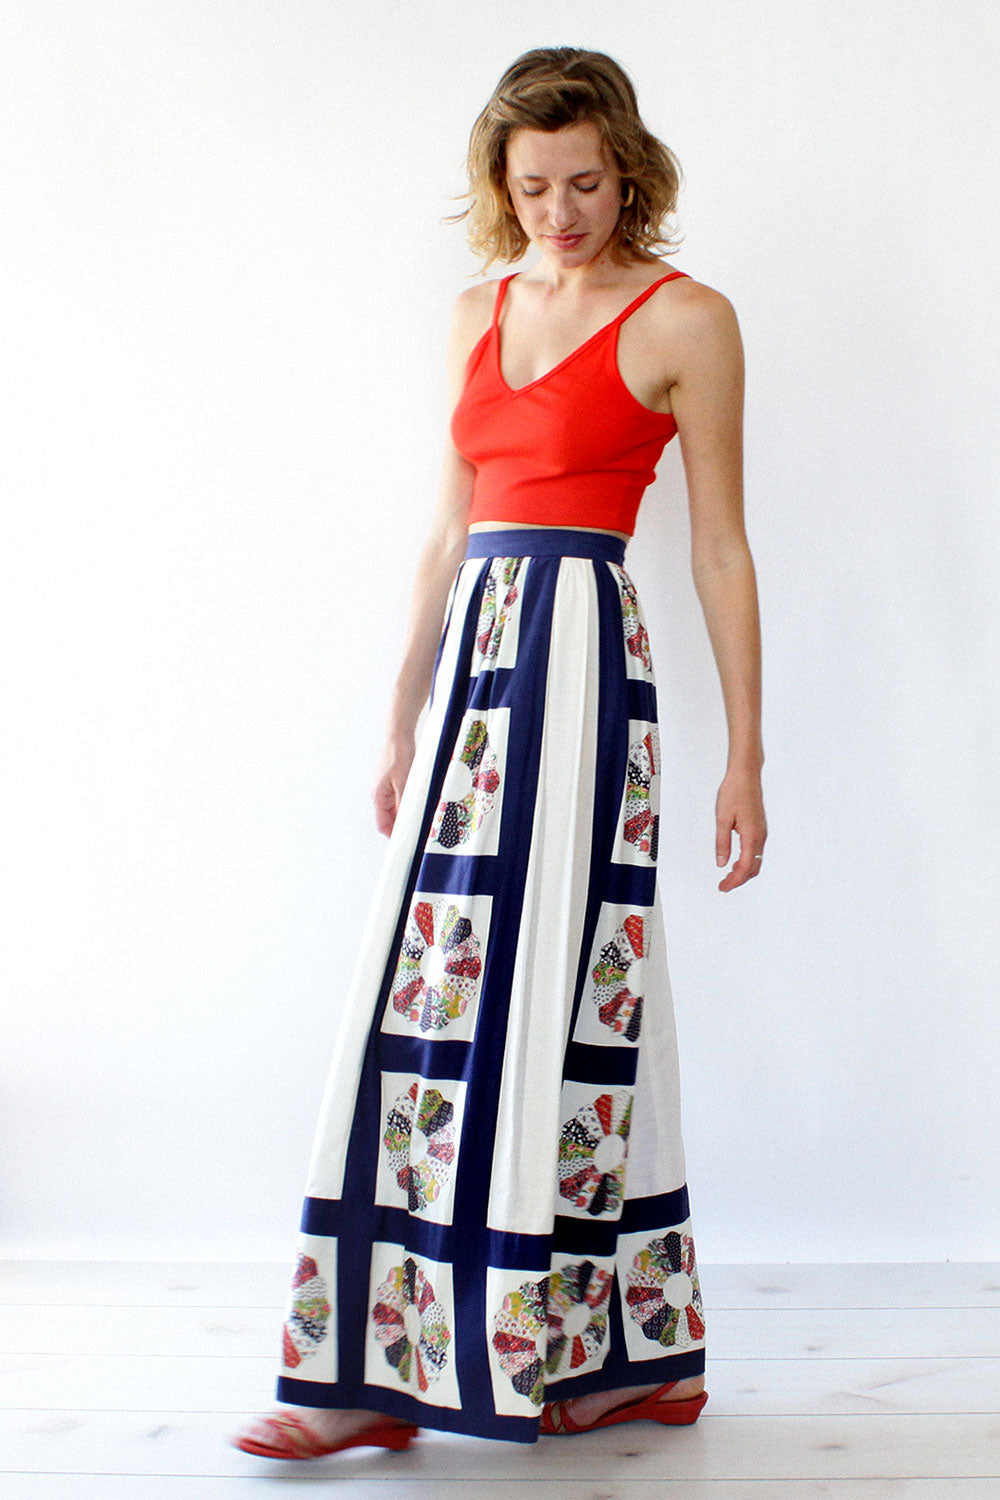 Victor Costa Quilting Bee Skirt XS